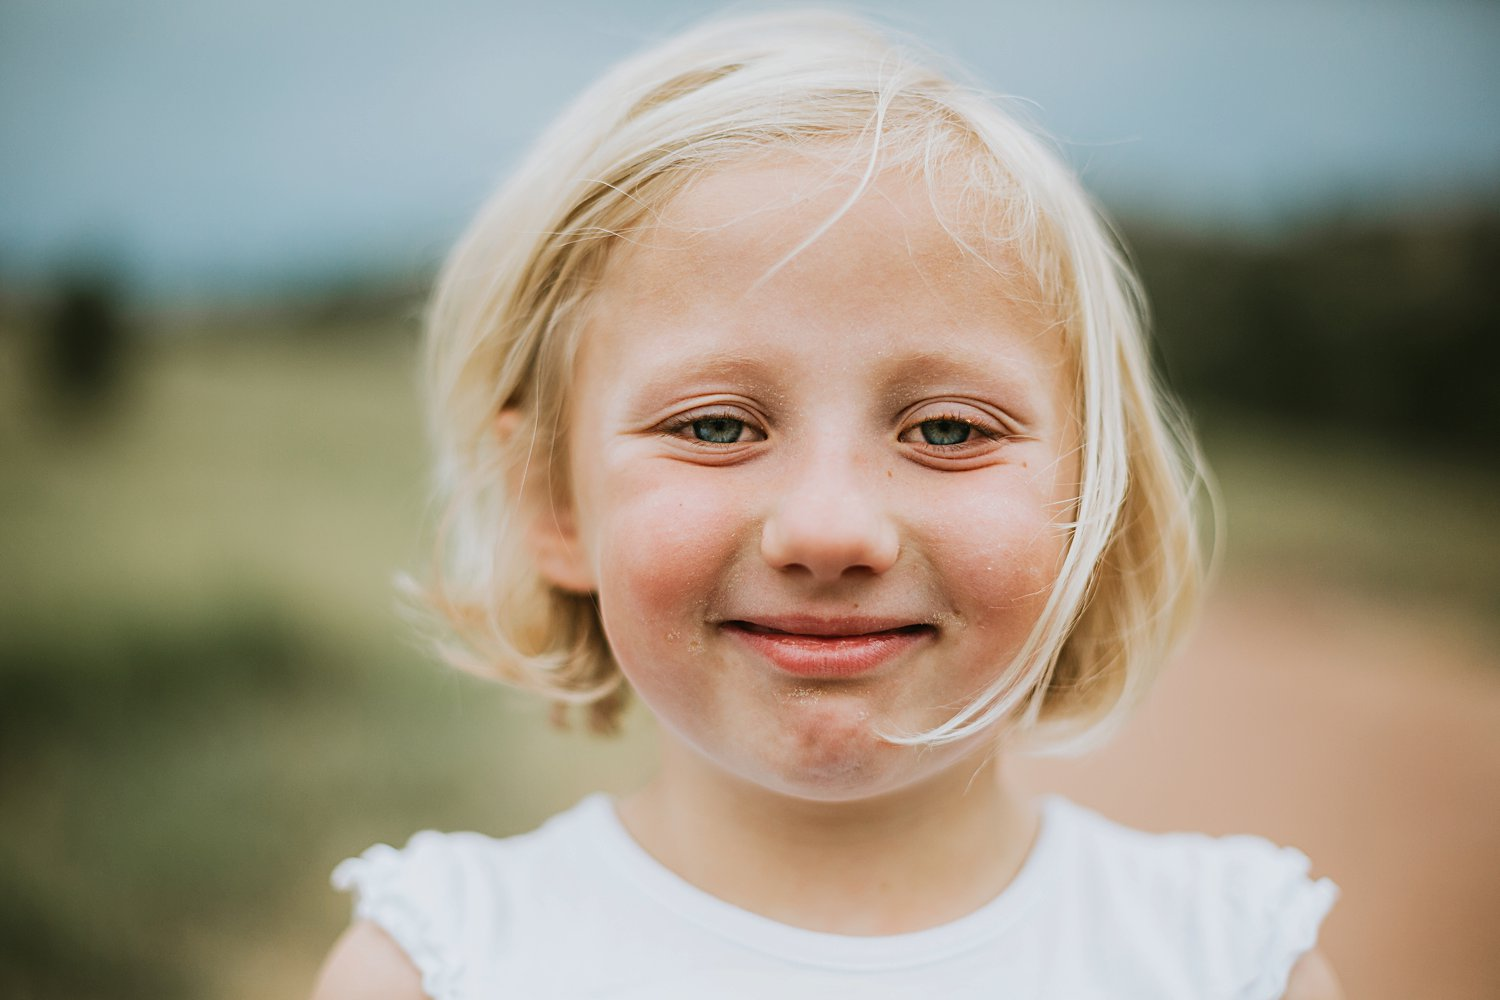 Close up of little girl smiling